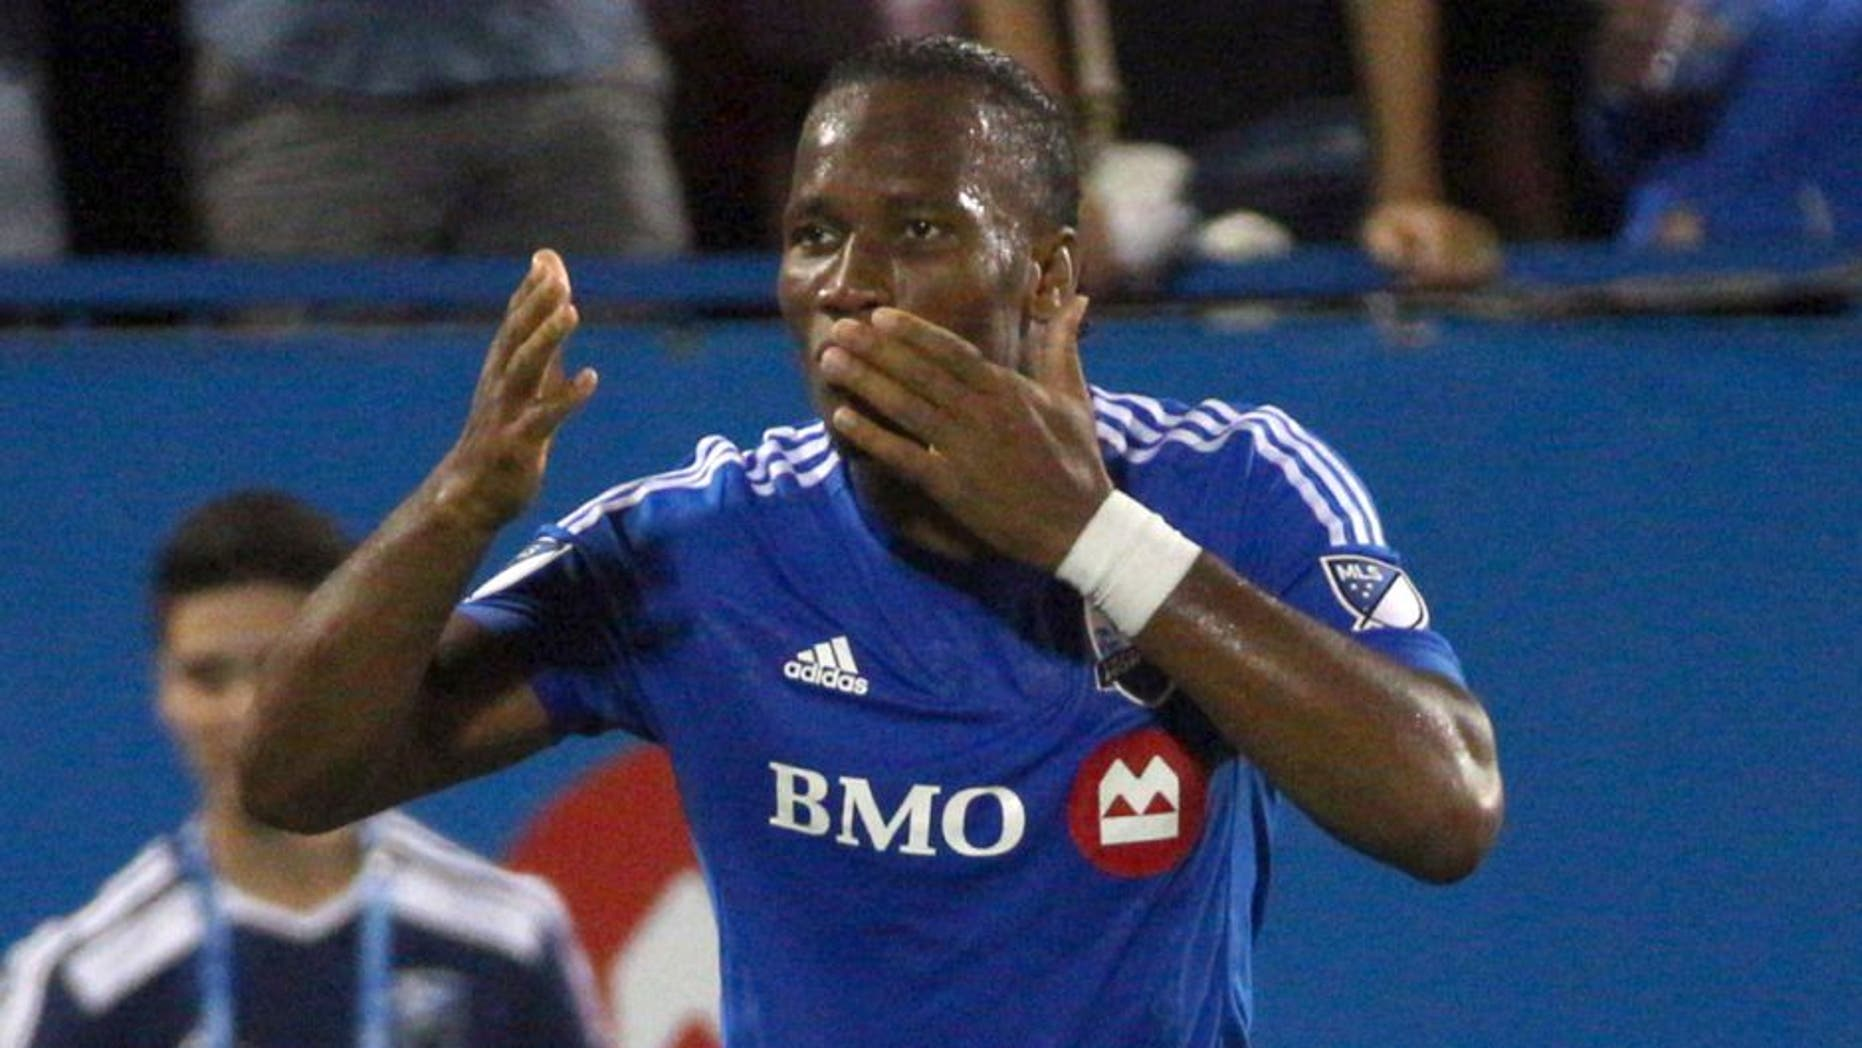 Sep 5, 2015; Montreal, Quebec, CAN; Montreal Impact forward Didier Drogba (11) celebrates his goal against Chicago Fire during the first half at the Sade Saputo. Mandatory Credit: Jean-Yves Ahern-USA TODAY Sports